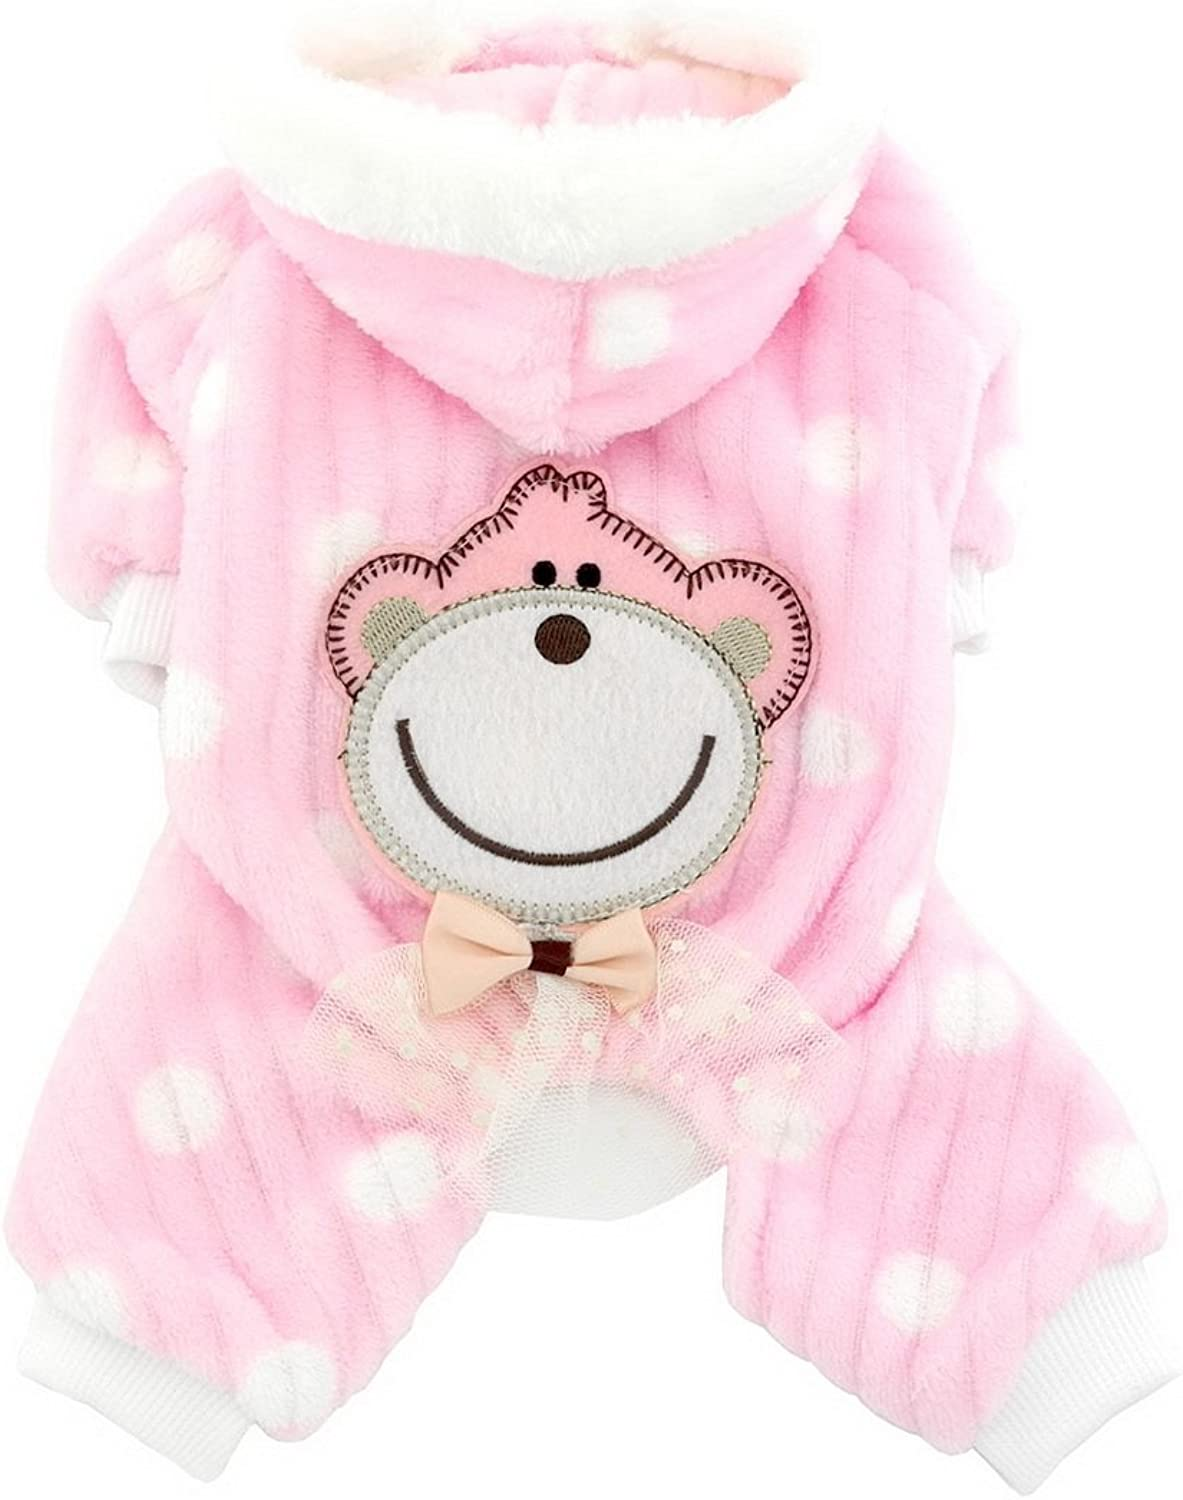 Smalllee_lucky_store Soft Velvet Cute Monkey Sweaters Pink Large